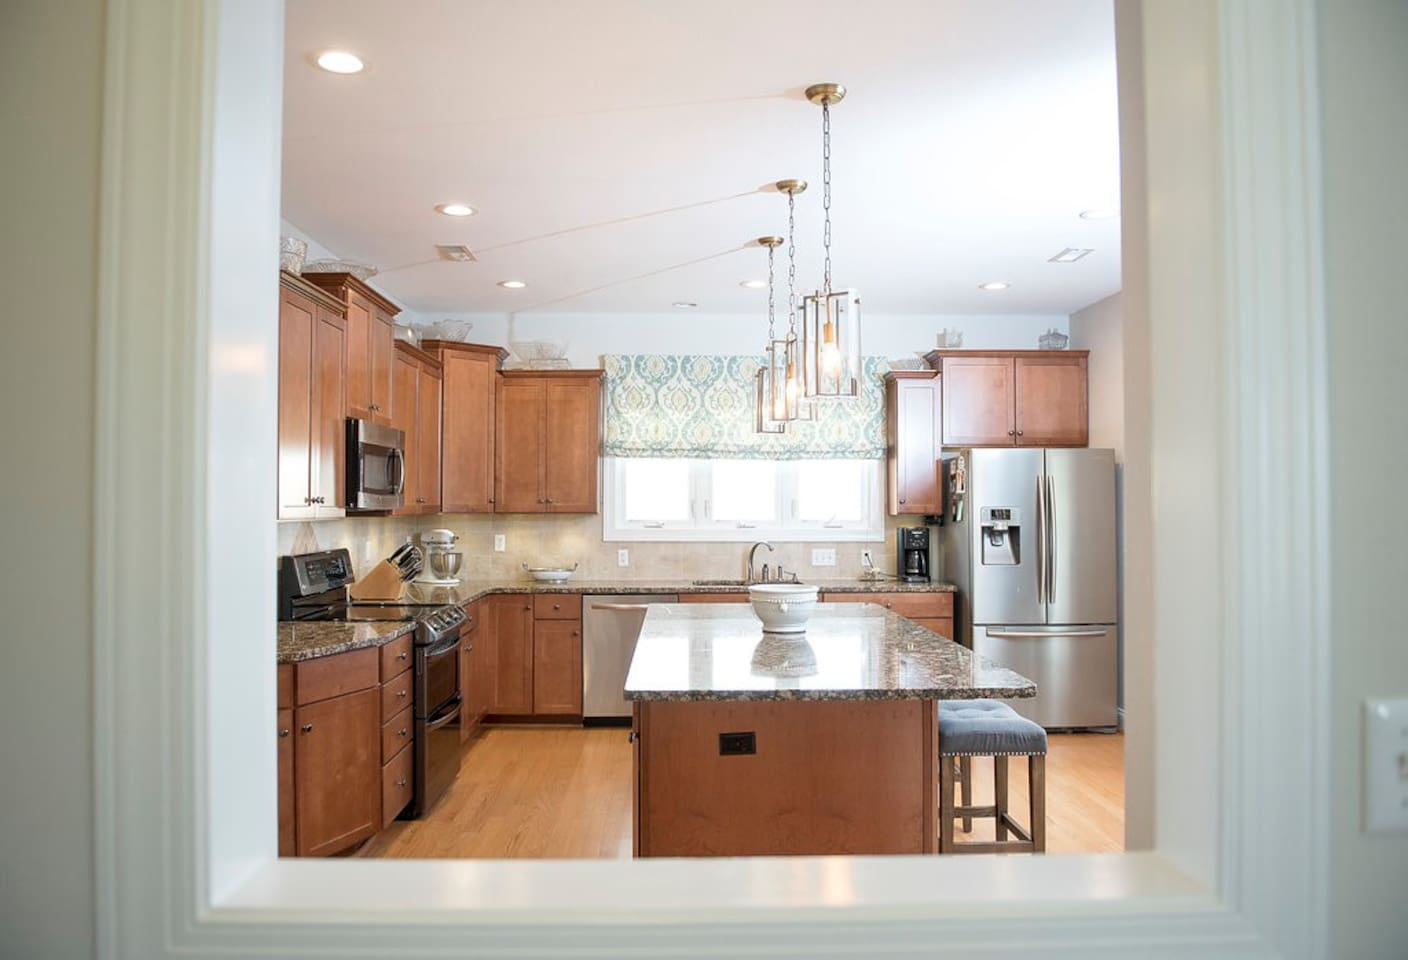 Gourmet Kitchen with granite countertops and large island